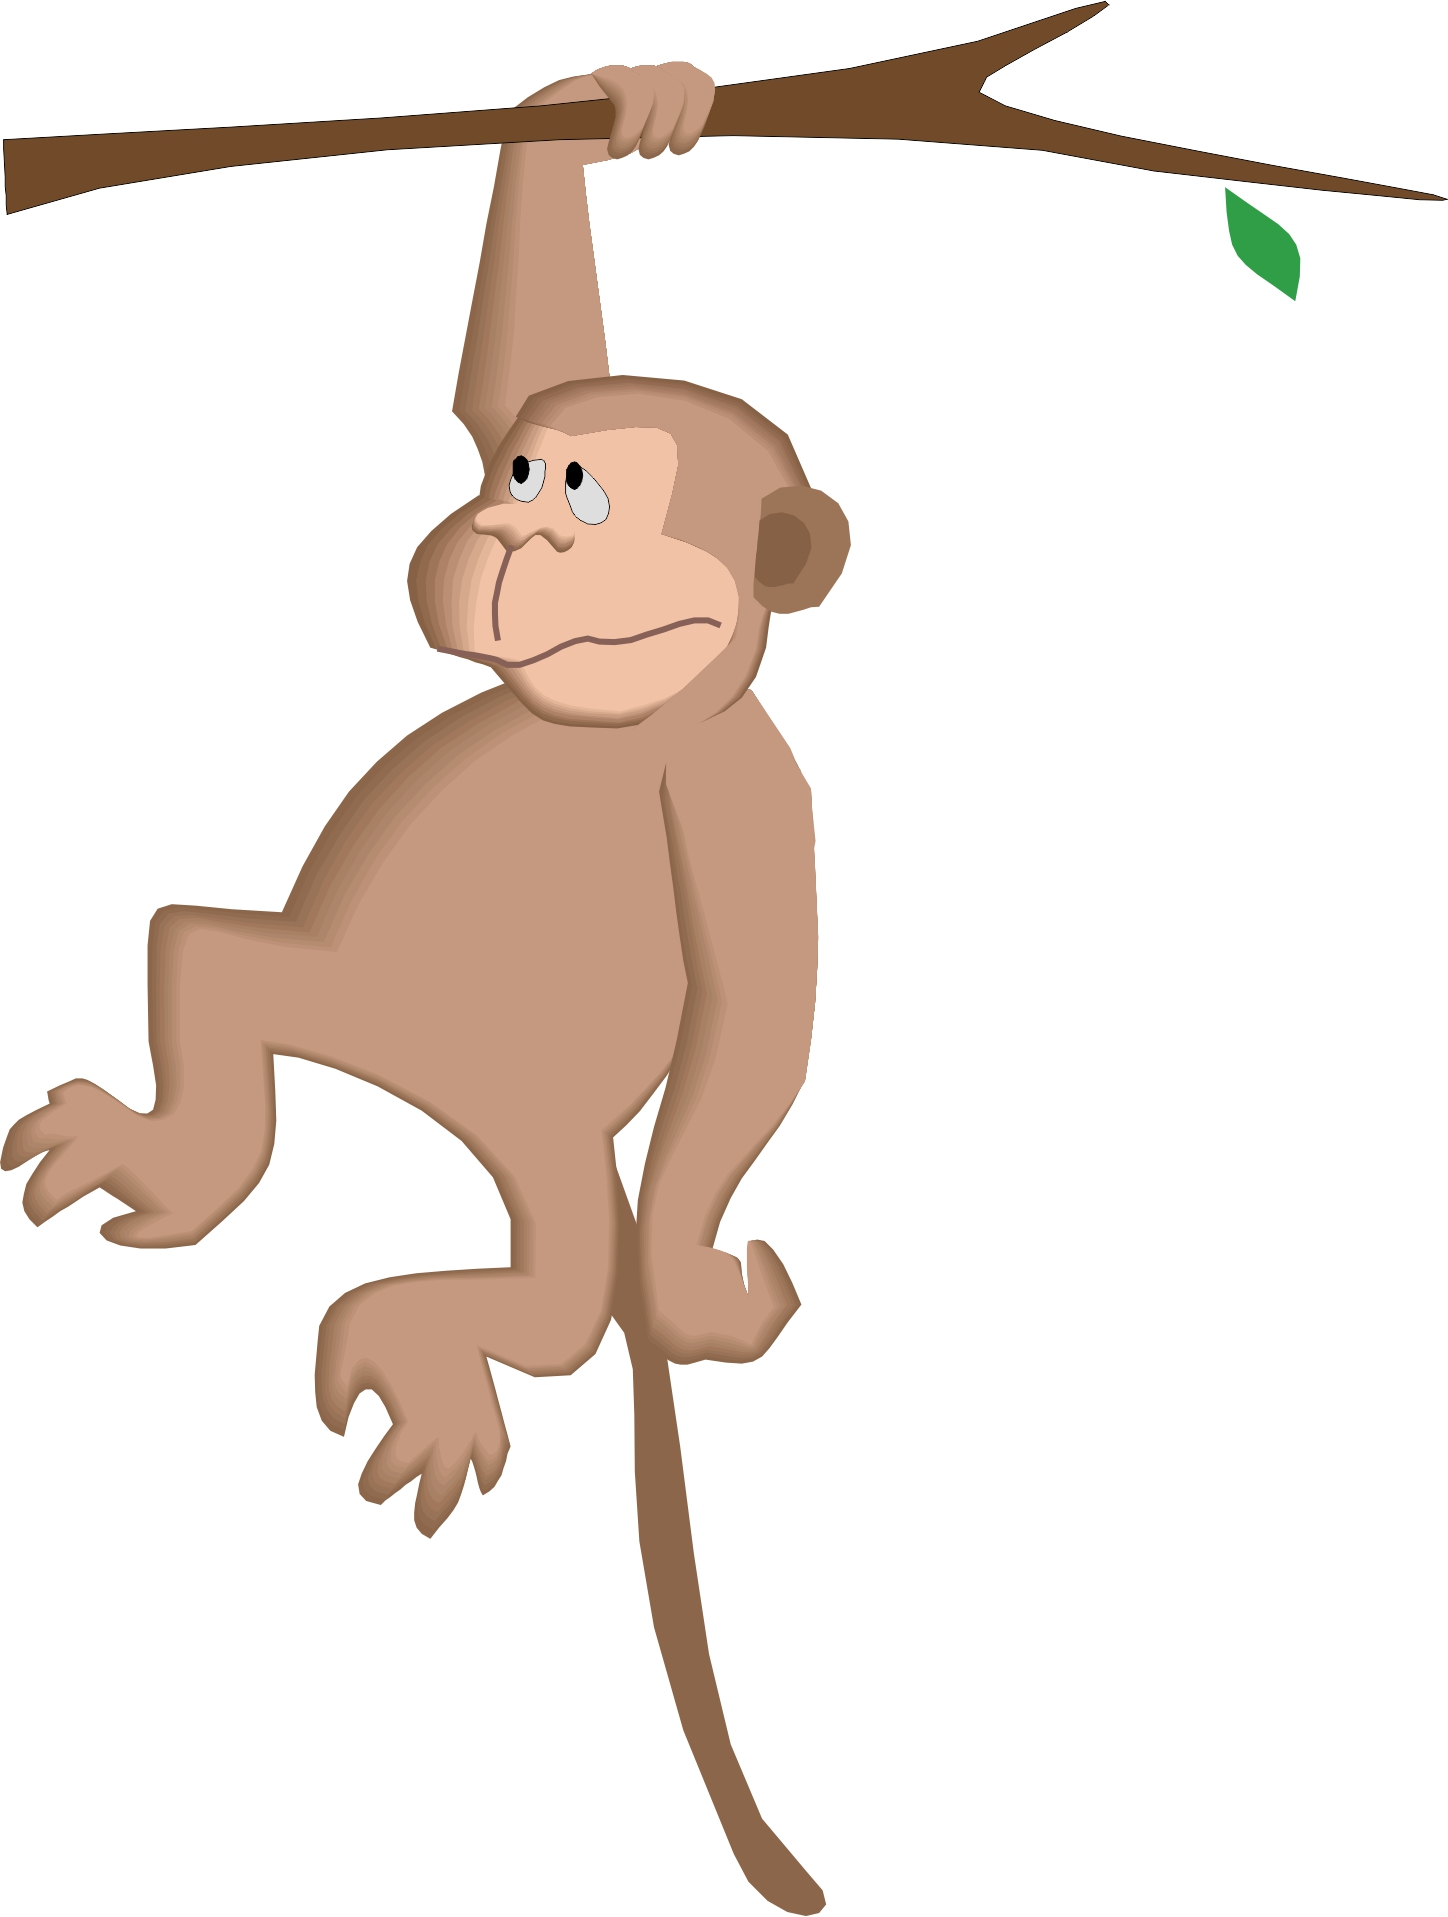 Clipart of a monkey hanging from a tree svg freeuse stock Free Cartoon Monkey Hanging From A Tree, Download Free Clip Art ... svg freeuse stock